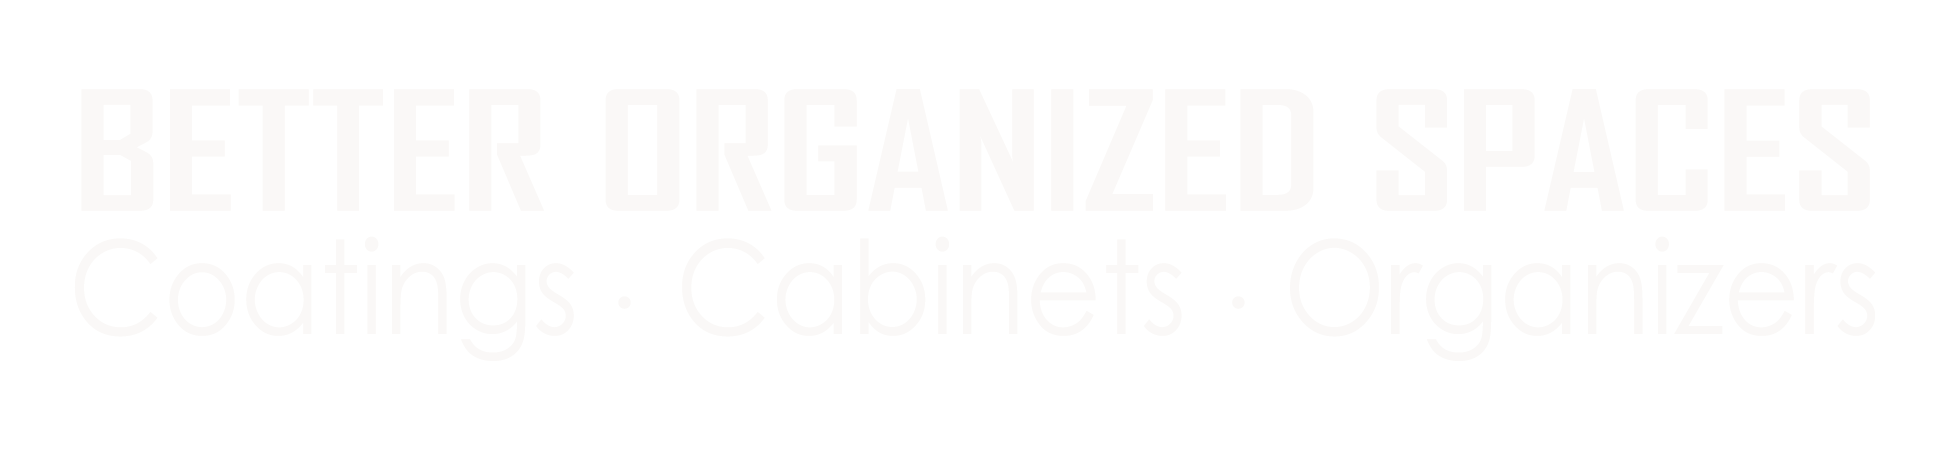 Better Organized Spaces logo